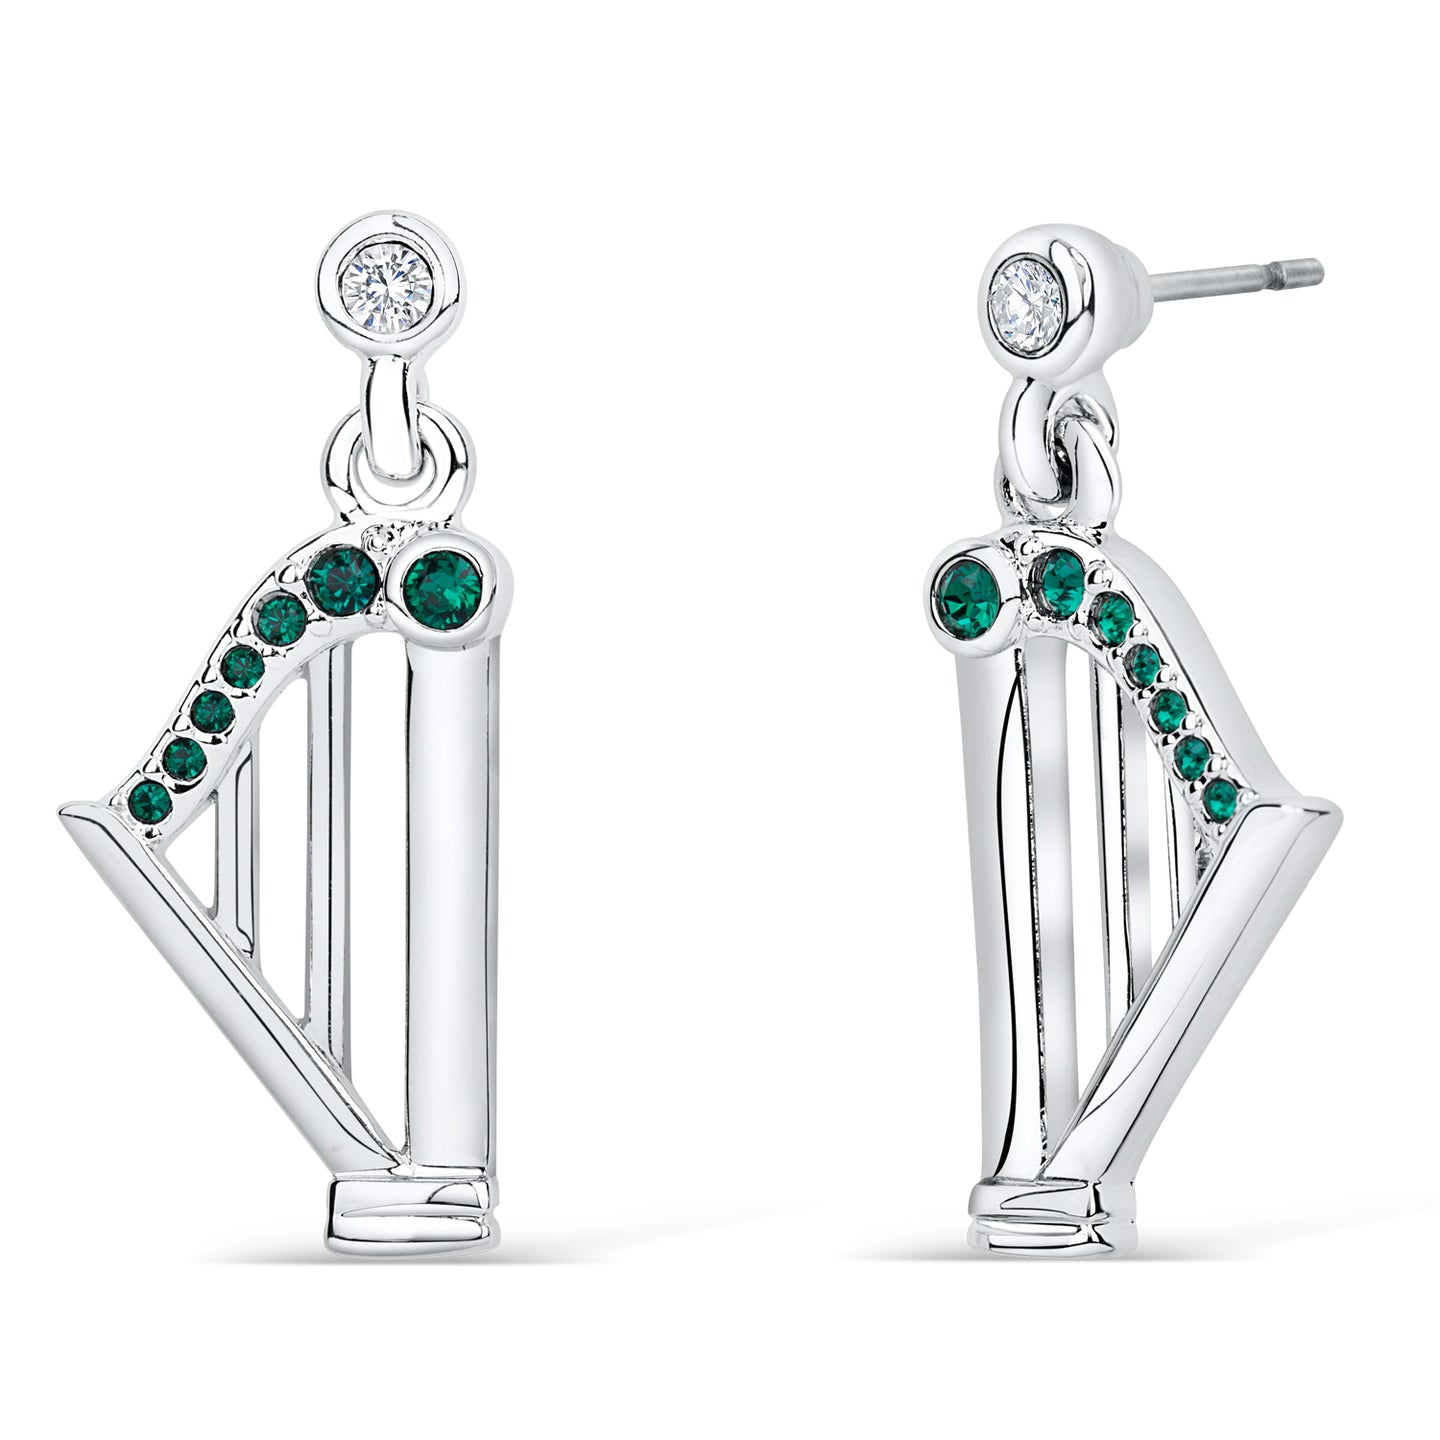 Harp Earrings with Emerald Crystals - Large